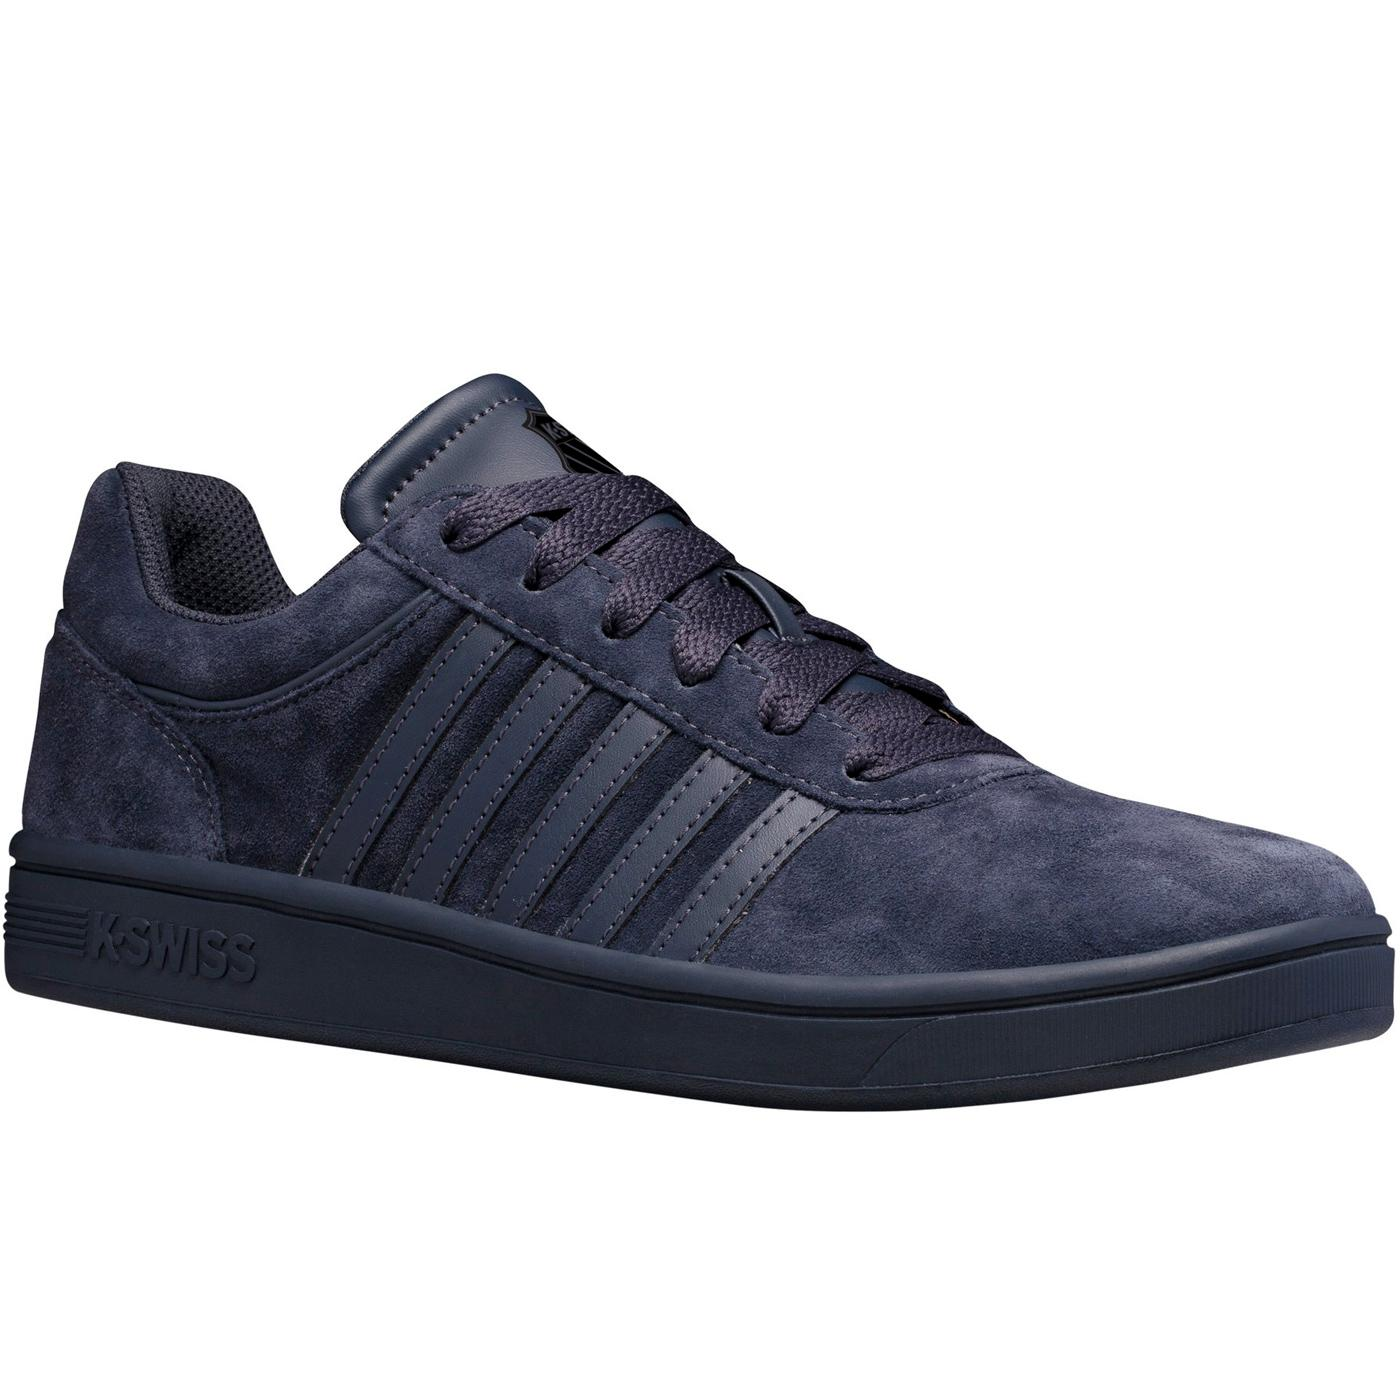 Court Cheswick Suede K-SWISS Retro Trainers (Ink)